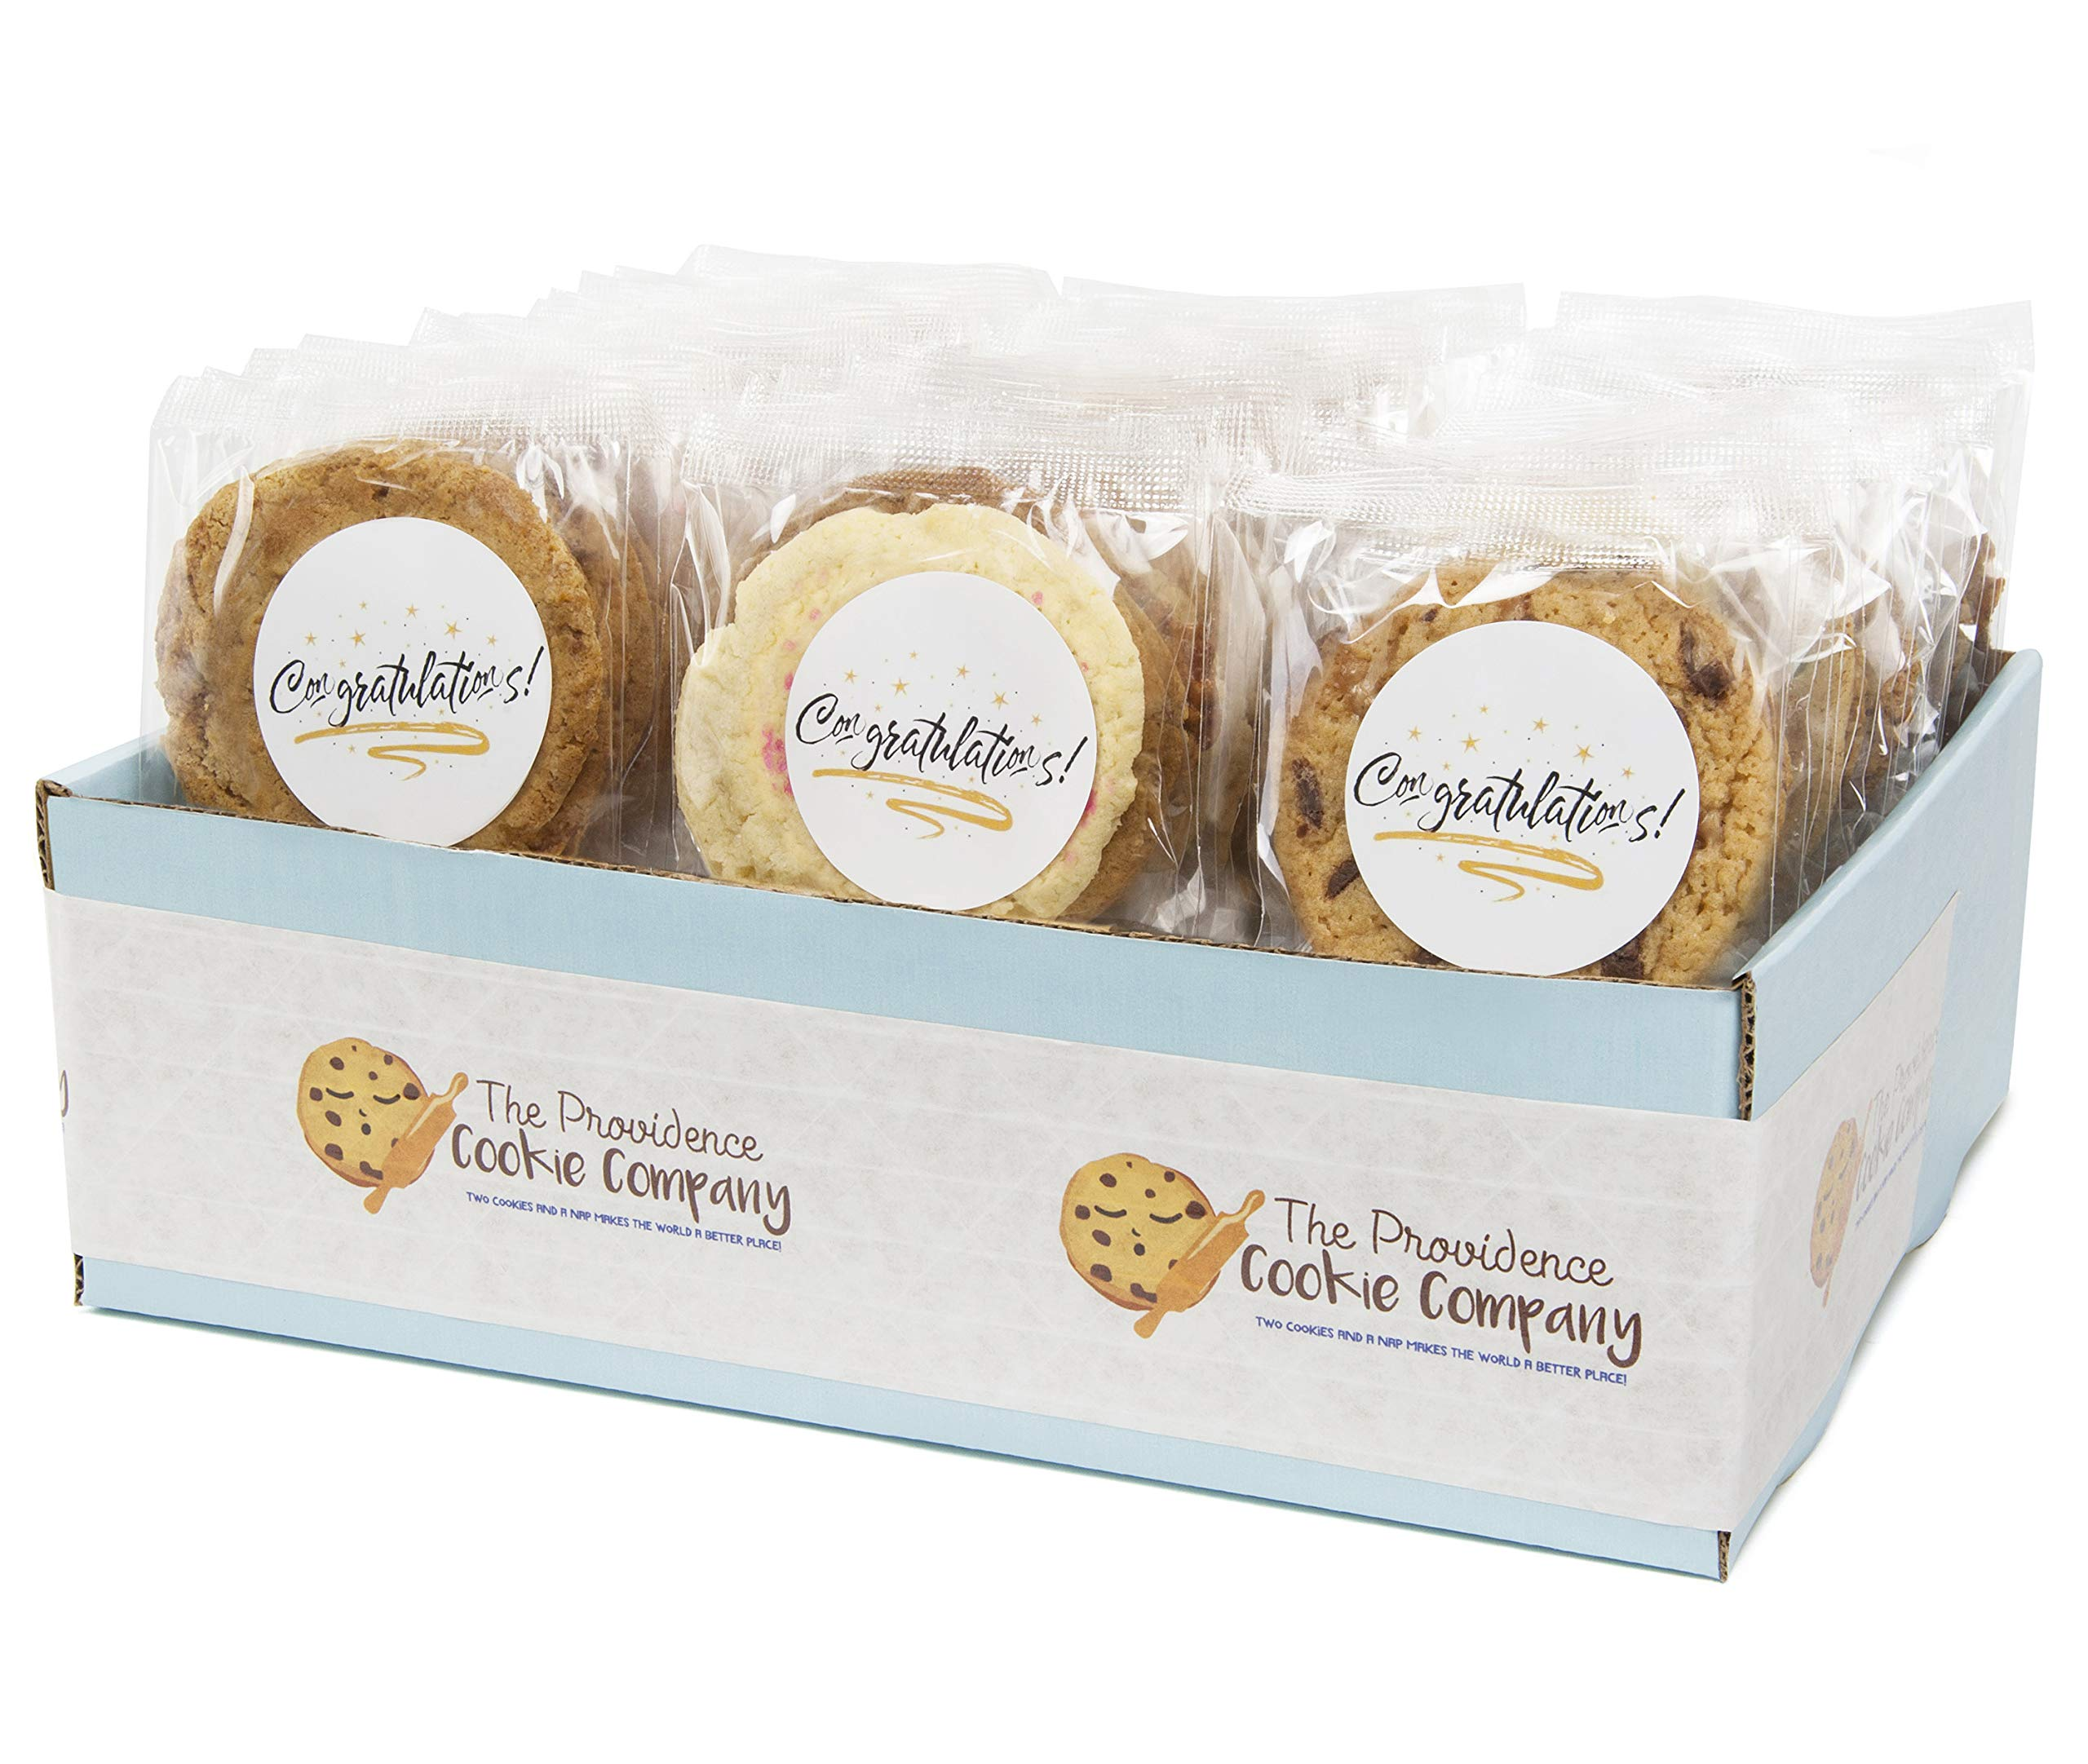 The Providence Cookie Company CONGRATULTIONS! GOURMET COOKIE GIFT choose 1, 2, 3 or 4 Dozen (1 Dozen)